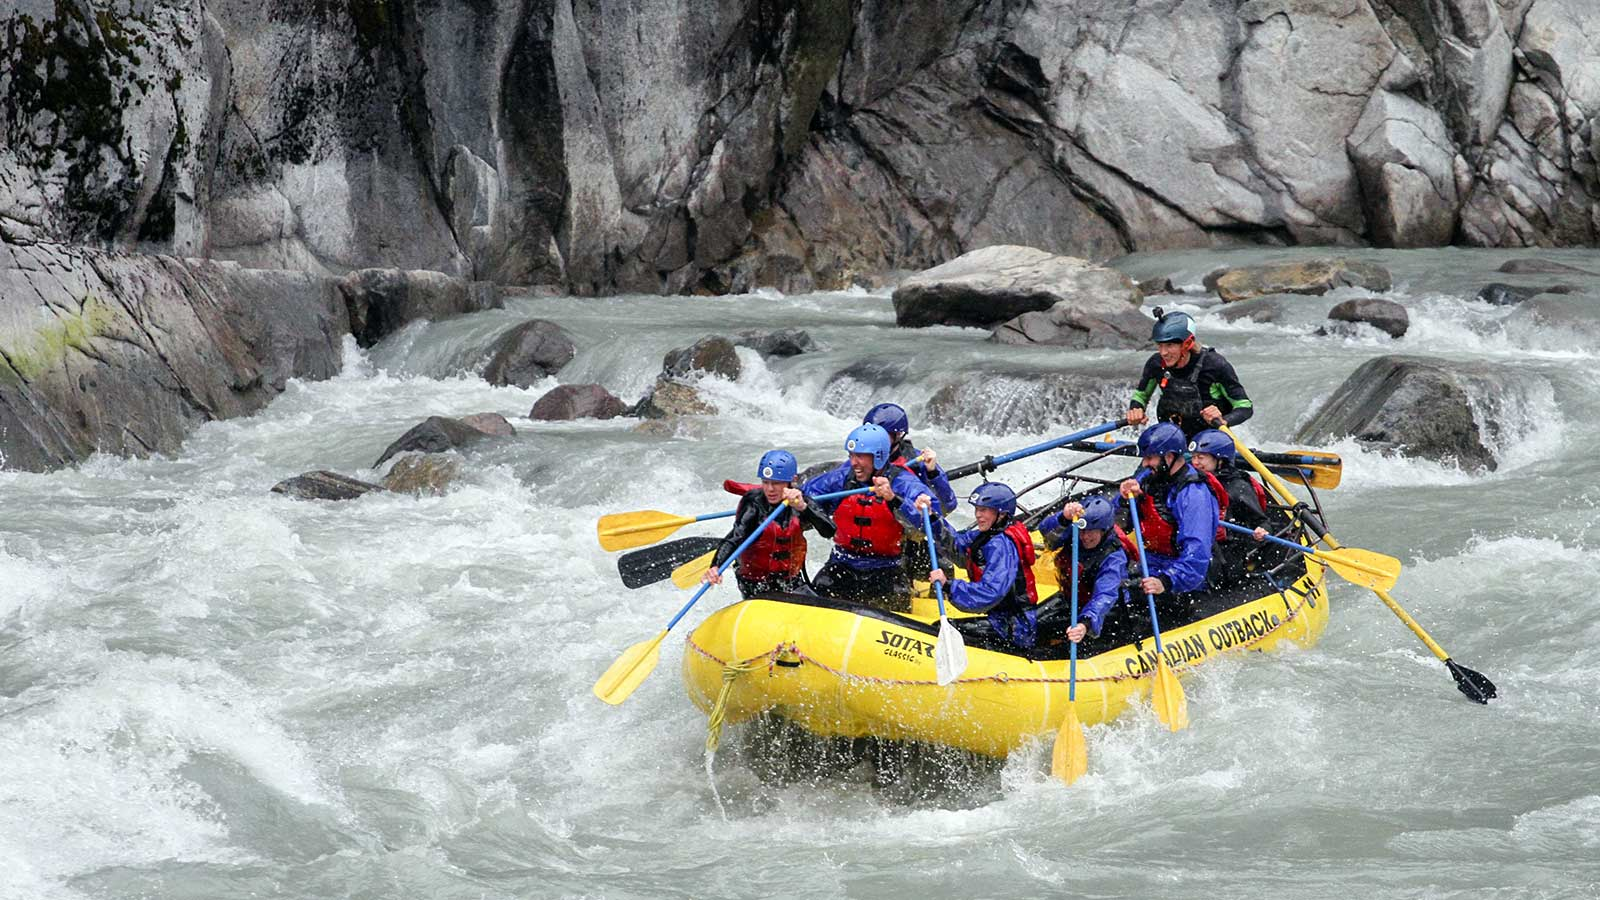 A group river rafting in a yellow raft